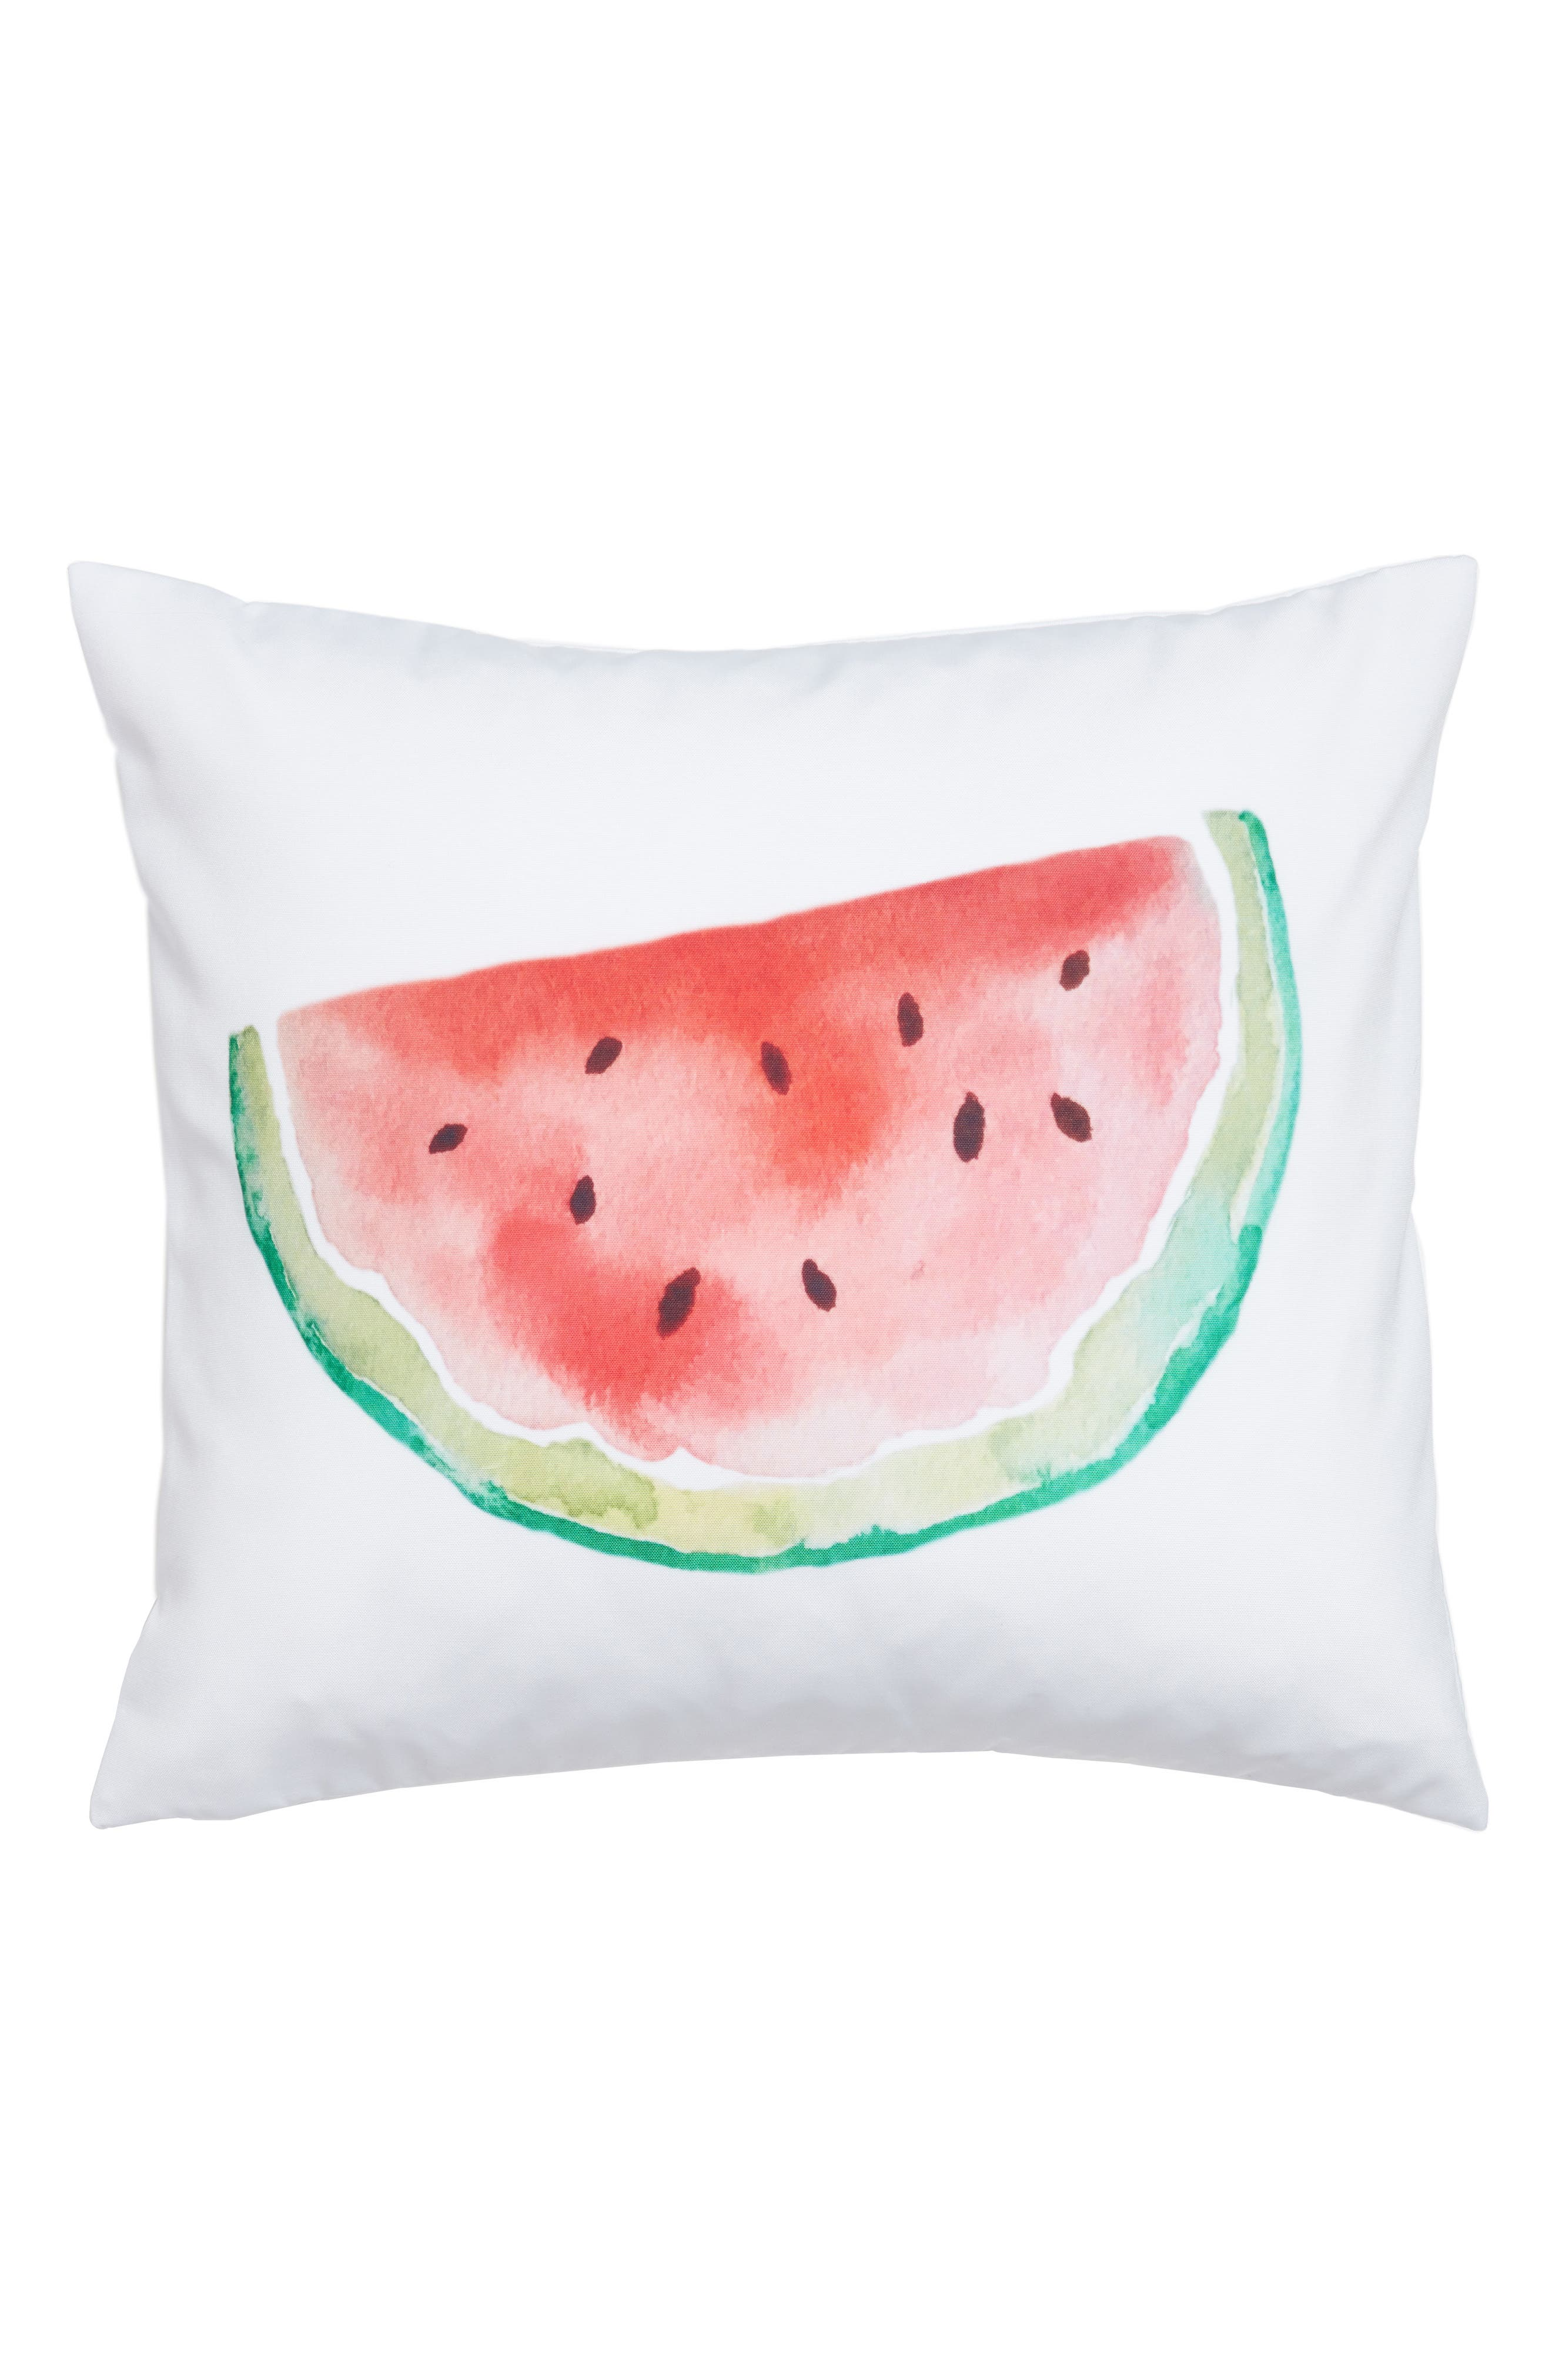 Watermelon Accent Pillow,                             Main thumbnail 1, color,                             Red